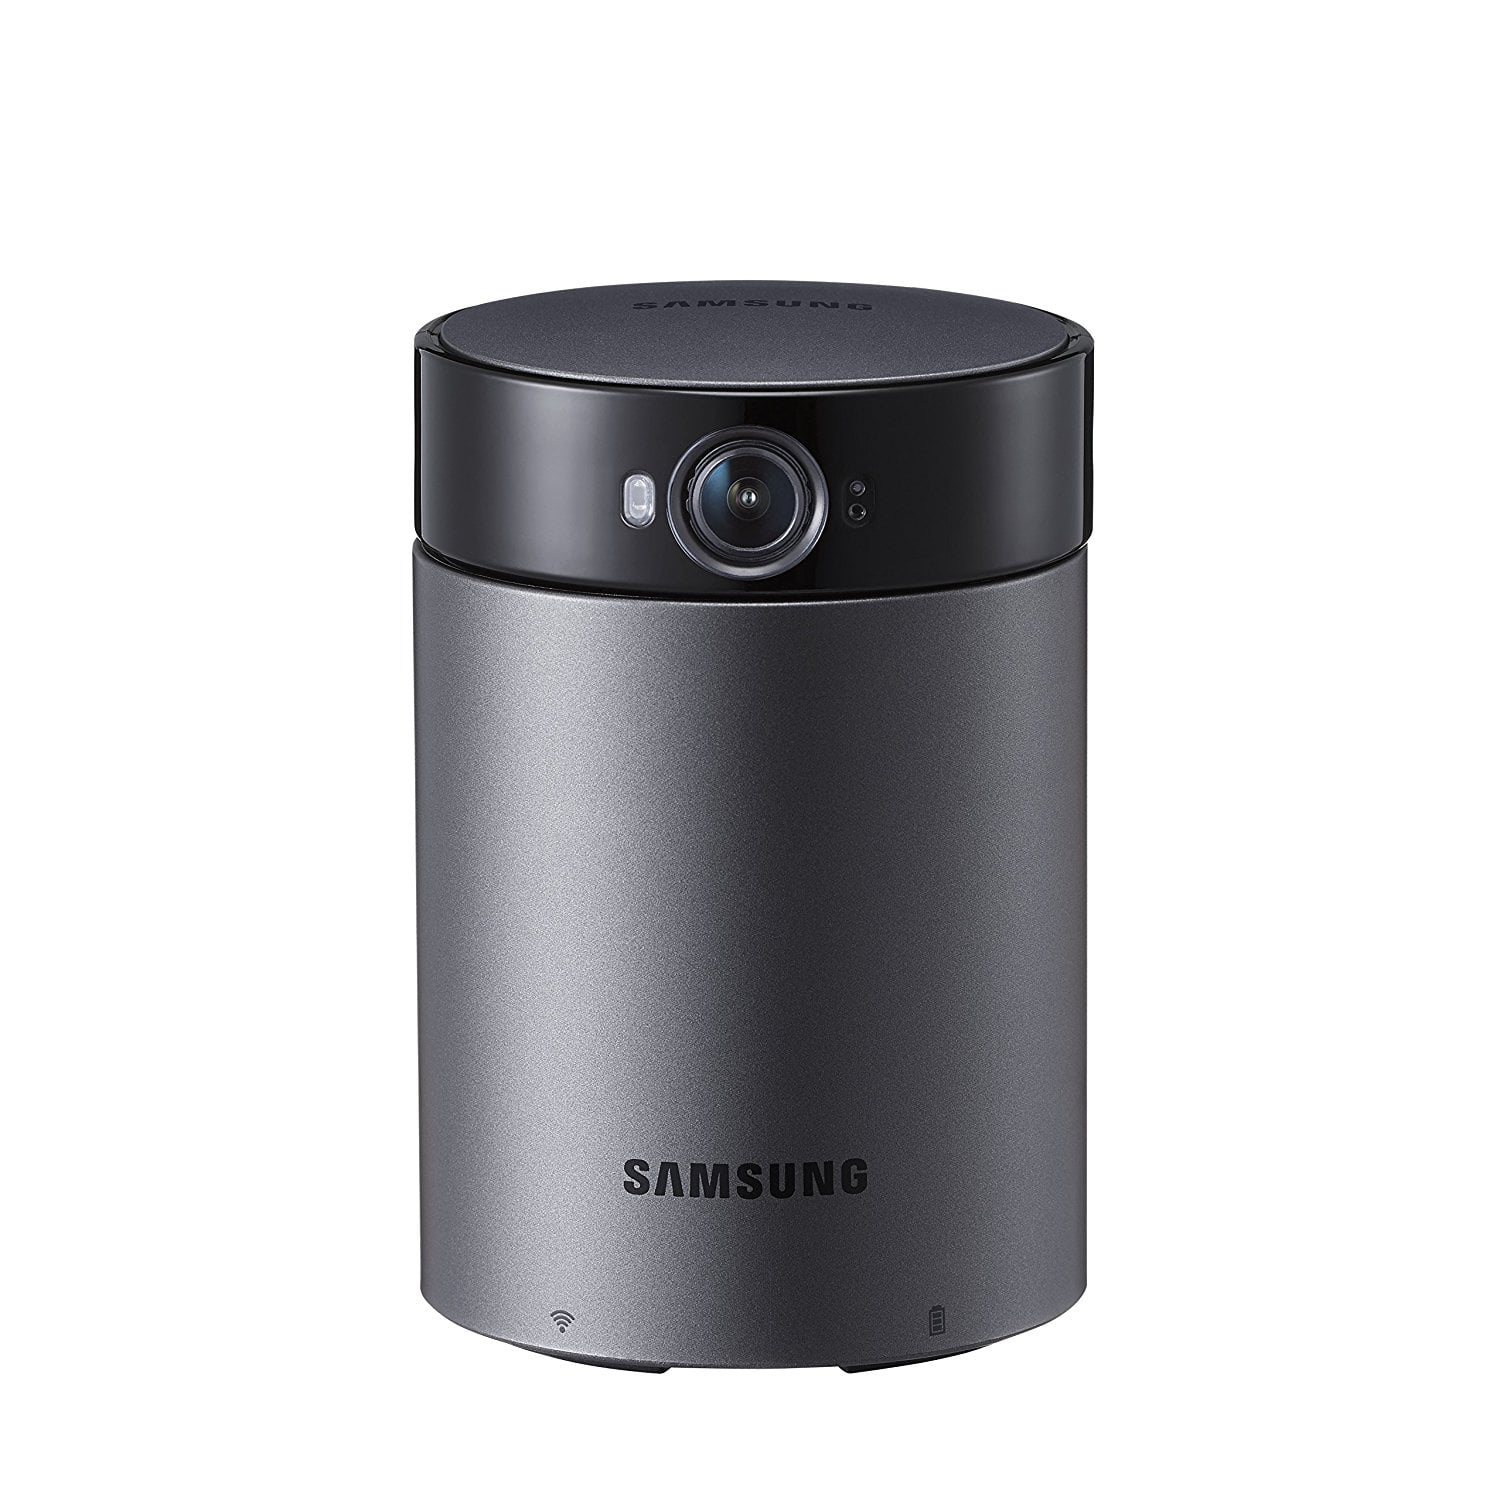 Samsung A1-Home Security System - Black (SNA-R1100W)